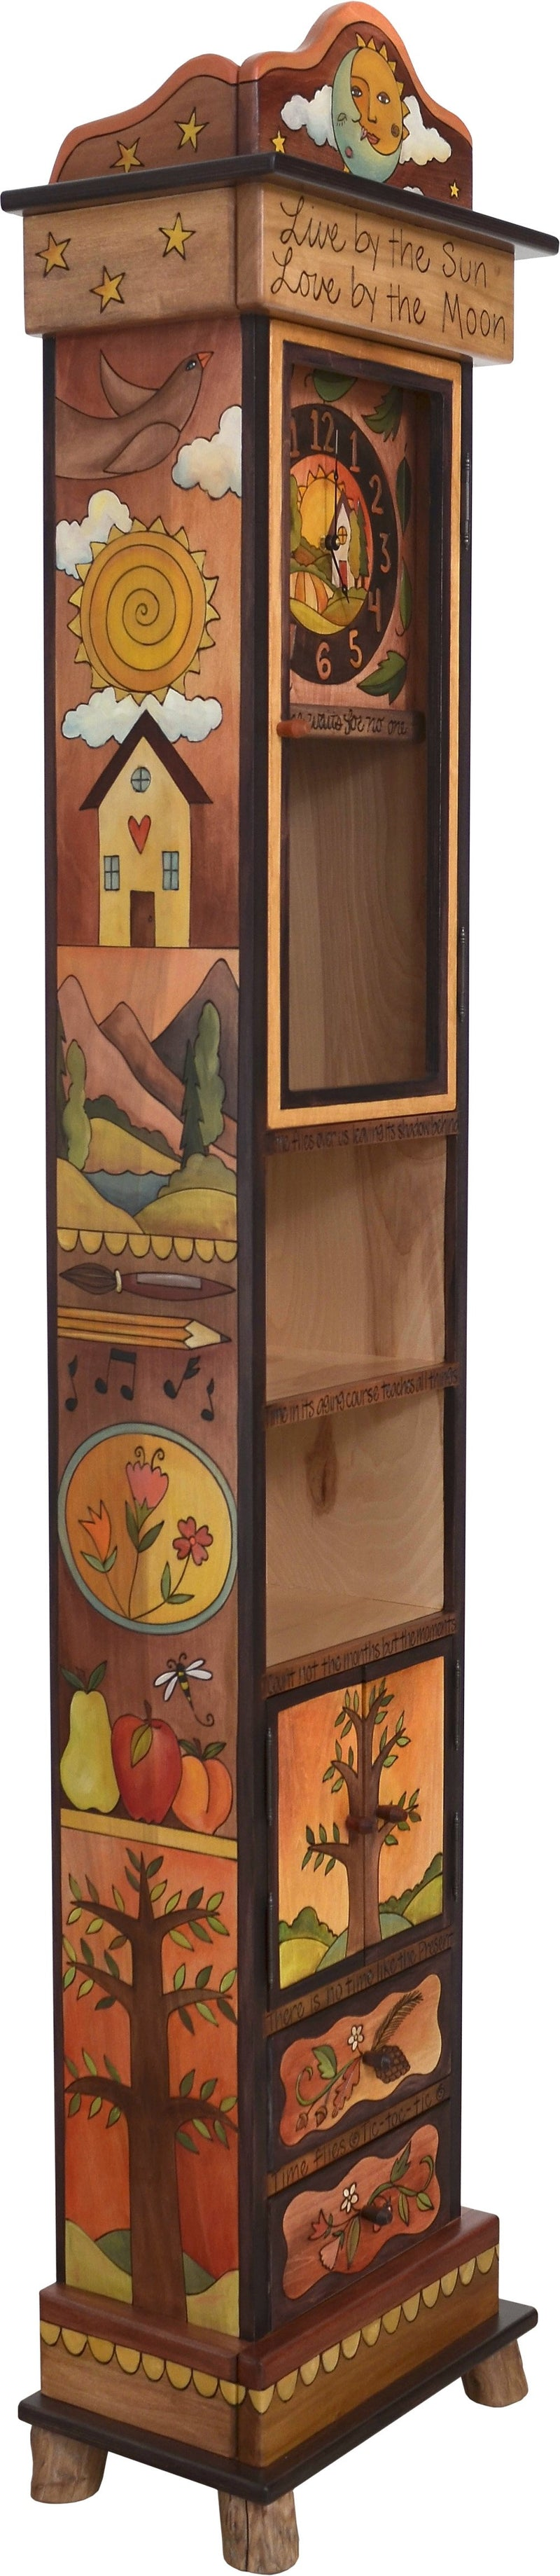 "Grandfather Clock –  Charming grandfather clock with shelves and cabinets for storage, ""Live by the Sun, Love by the Moon"""